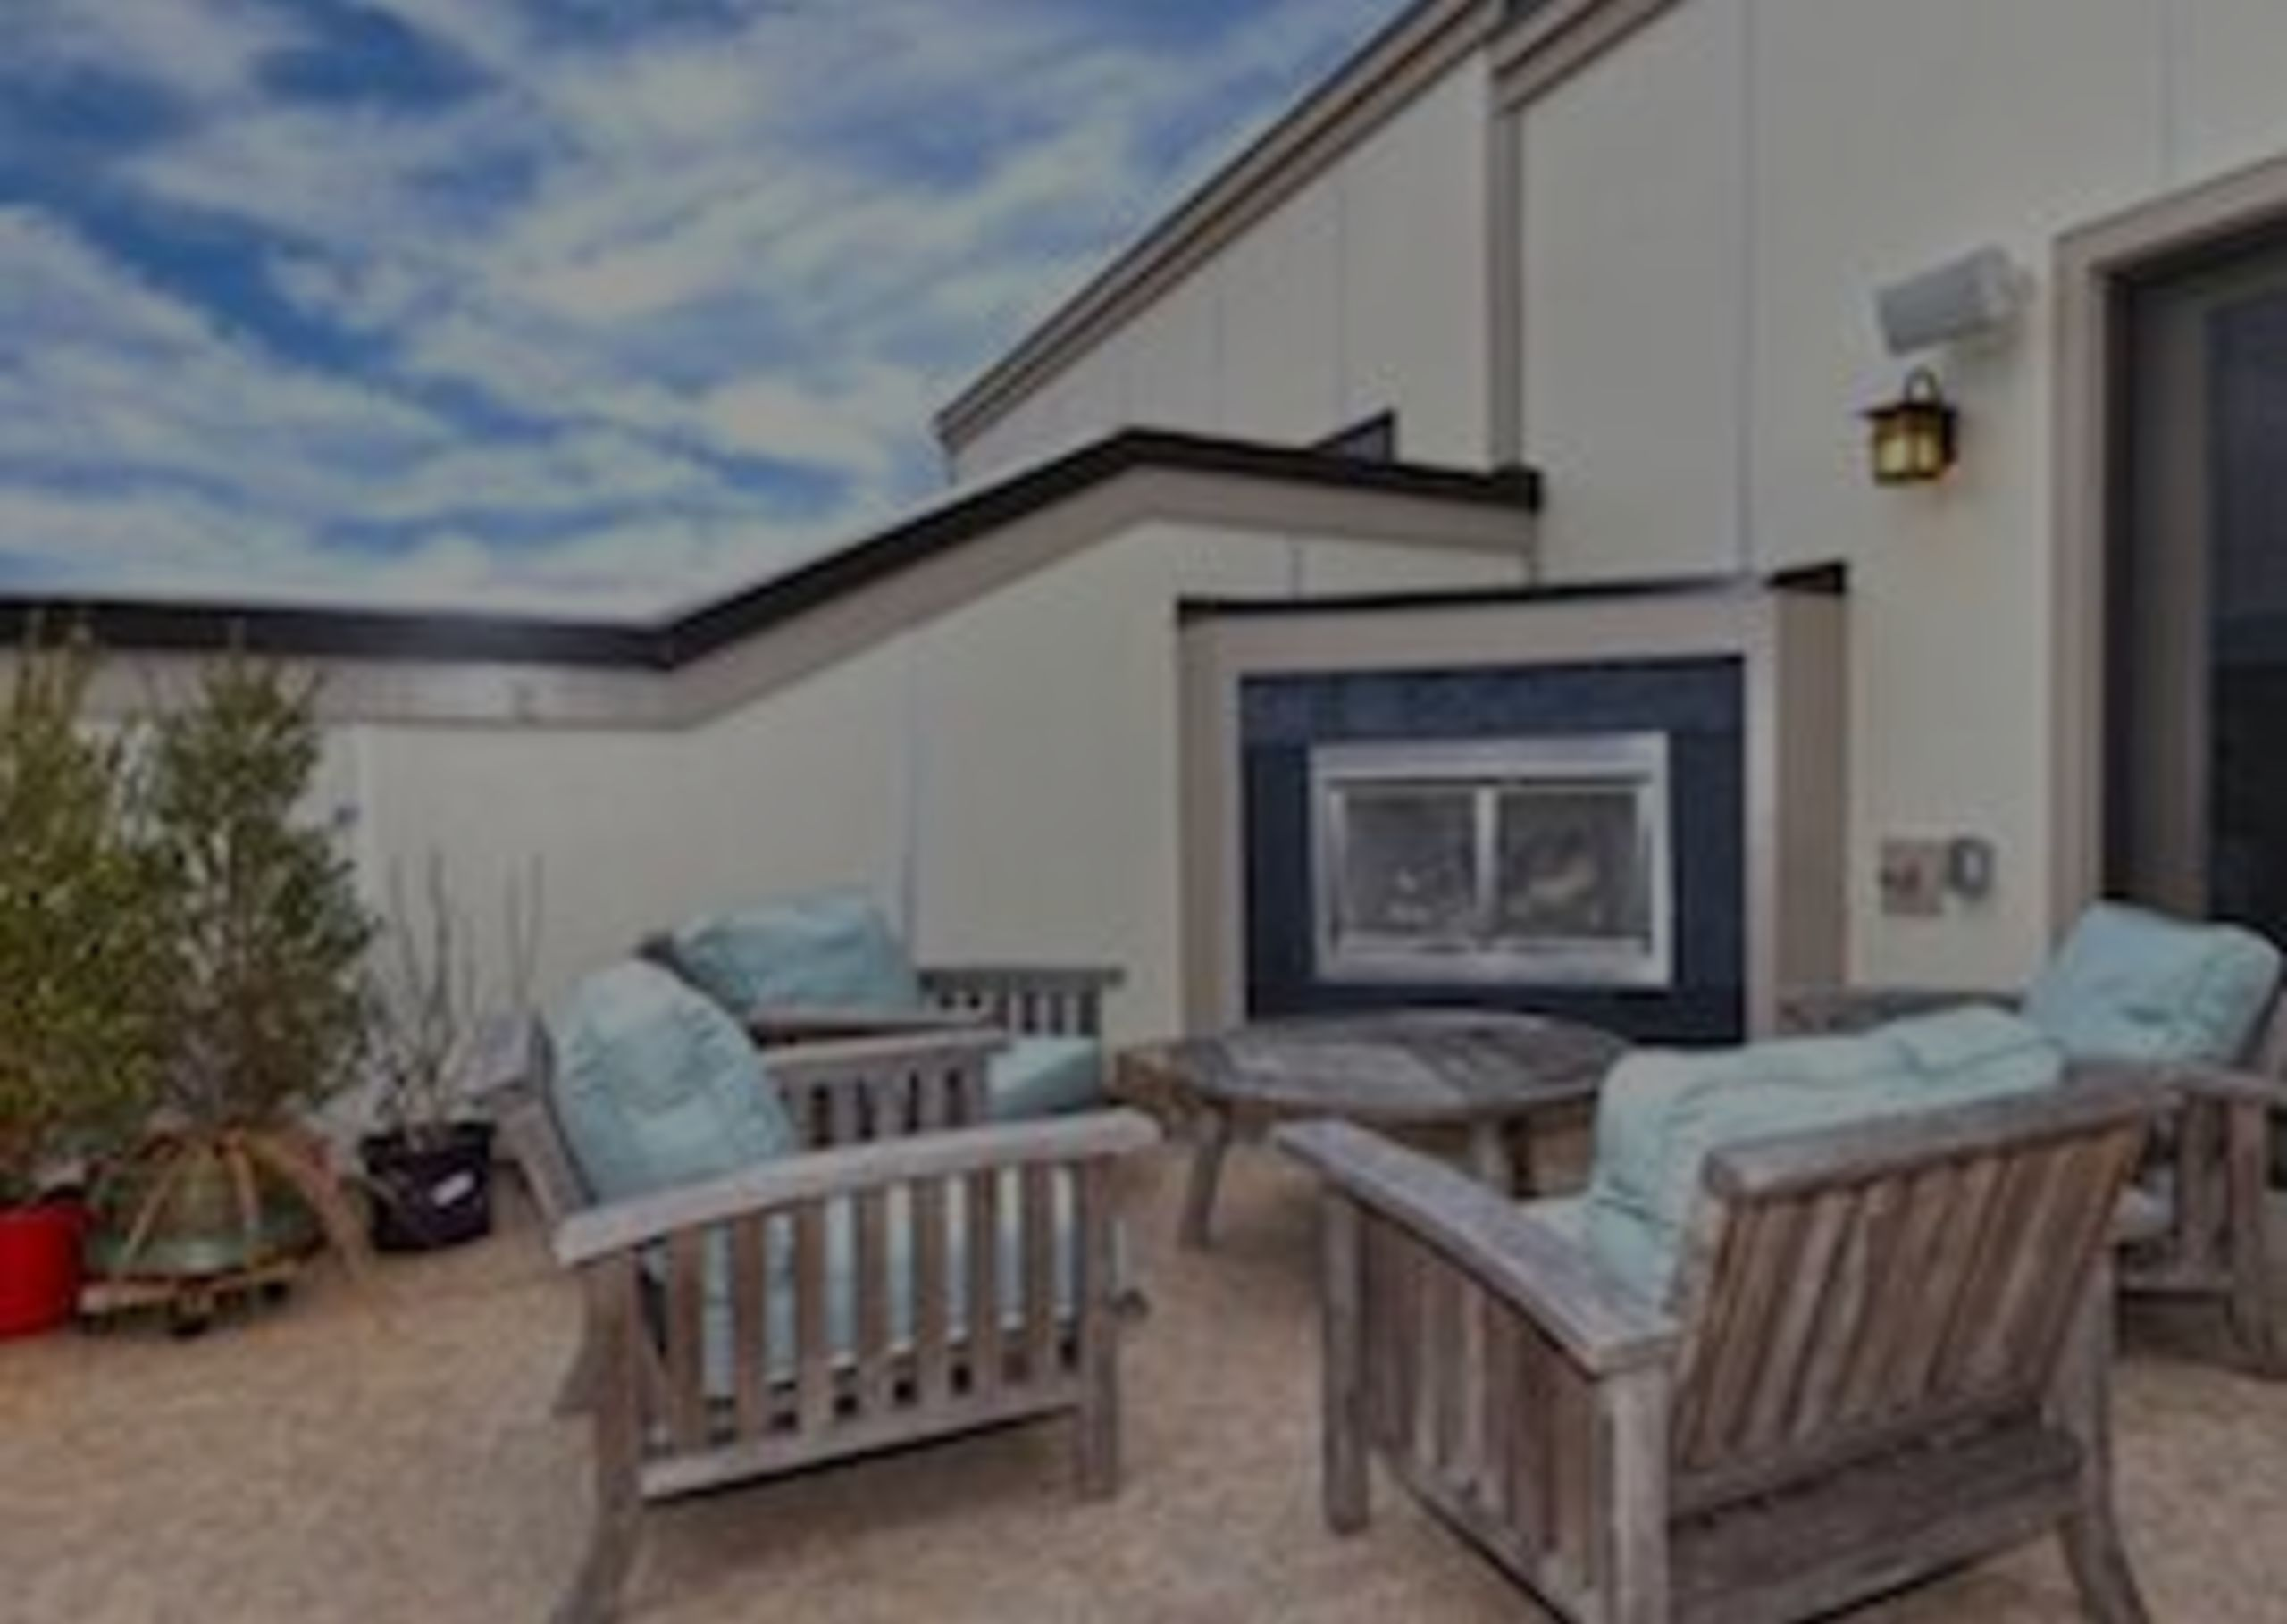 Stunning Townhome for sale in Leesburg's Cresent Place!